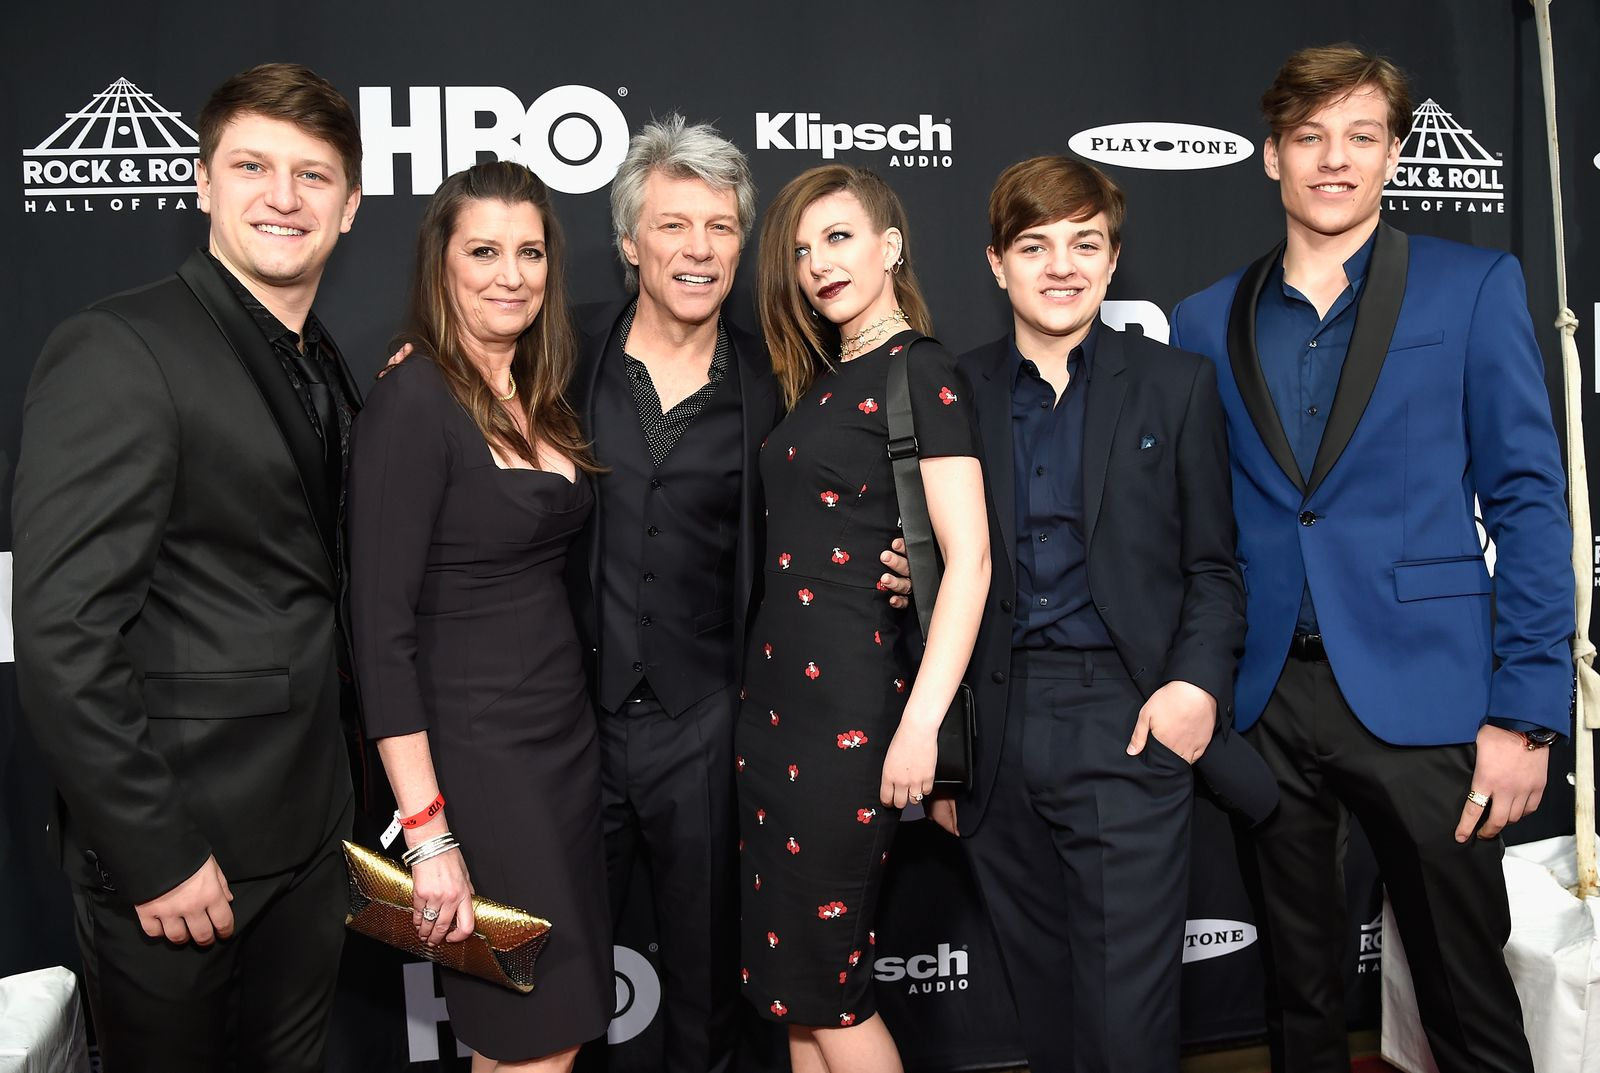 Jon Bon Jovi and family attend the 33rd Annual Rock & Roll Hall of Fame Induction Ceremony at Public Auditorium on April 14, 2018 in Cleveland, Ohio.   Photo: Getty Images